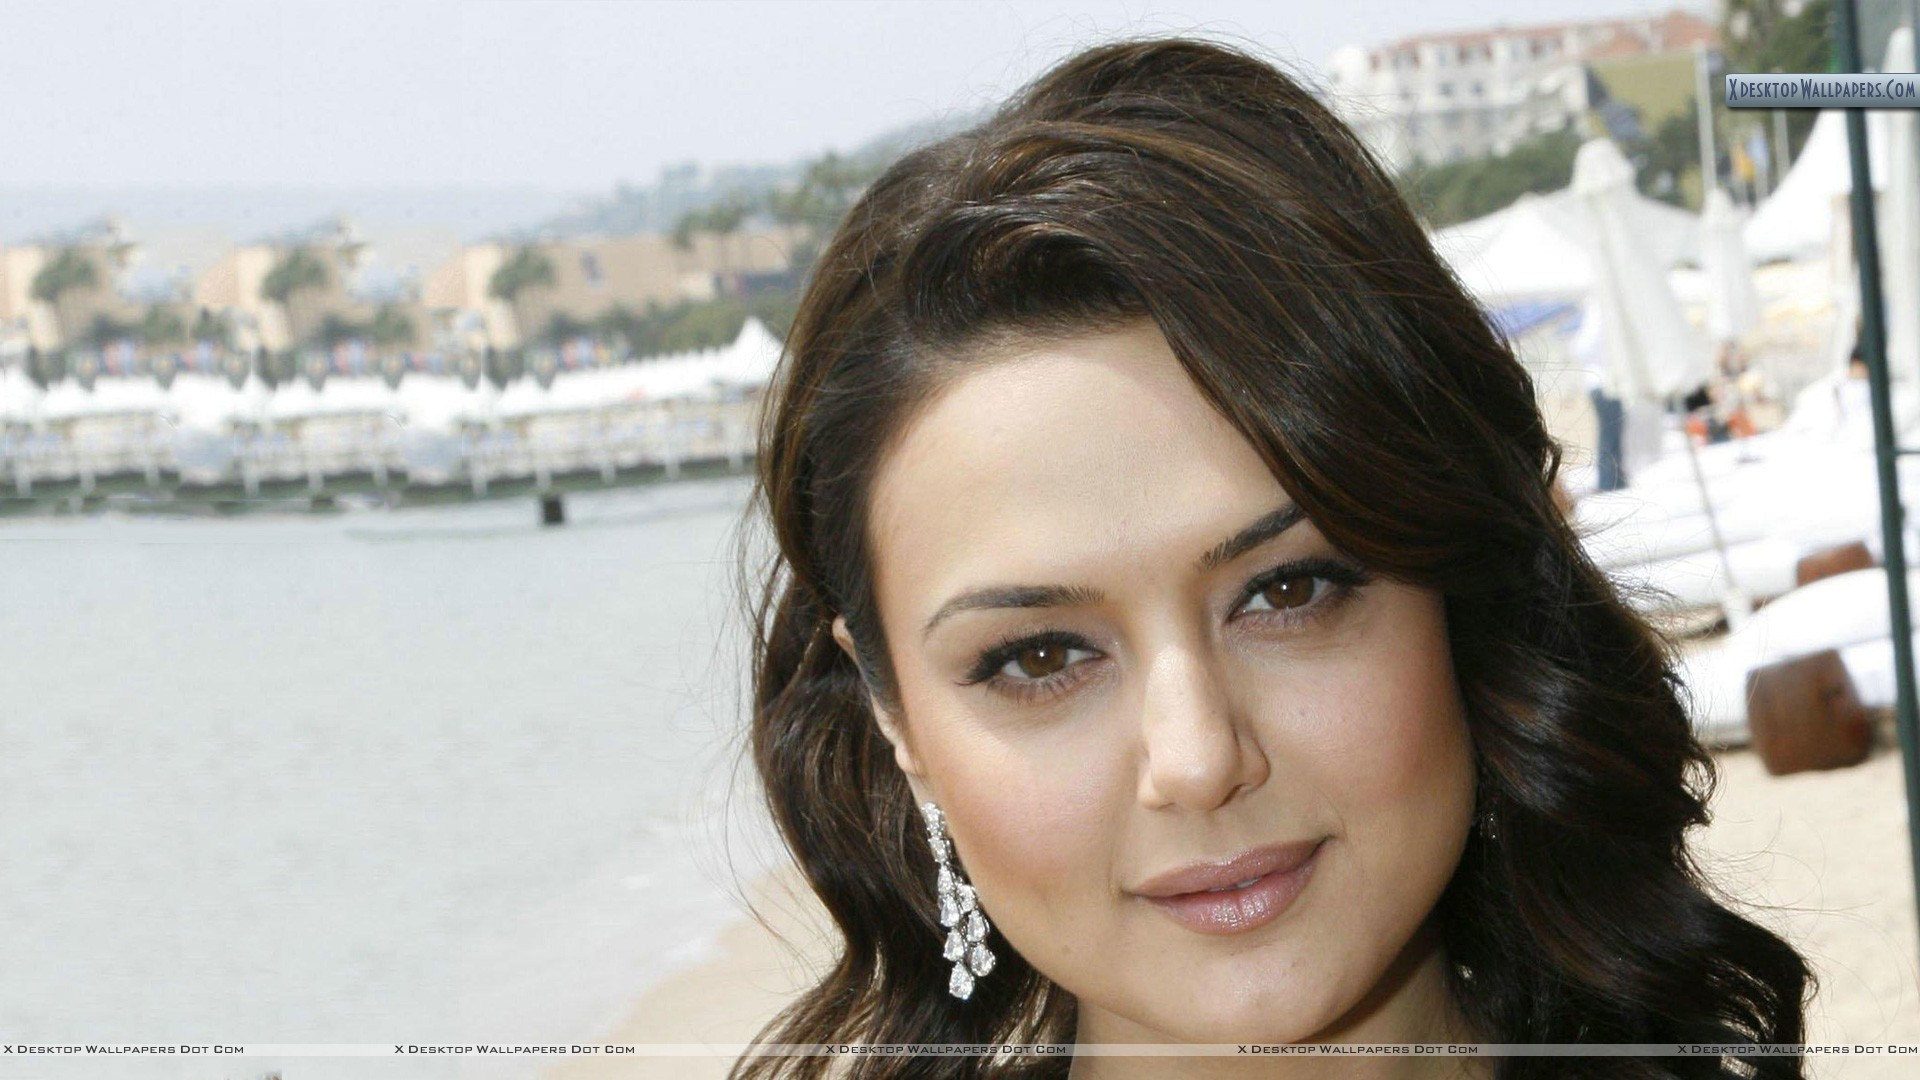 For that preity zinta pussy close up this